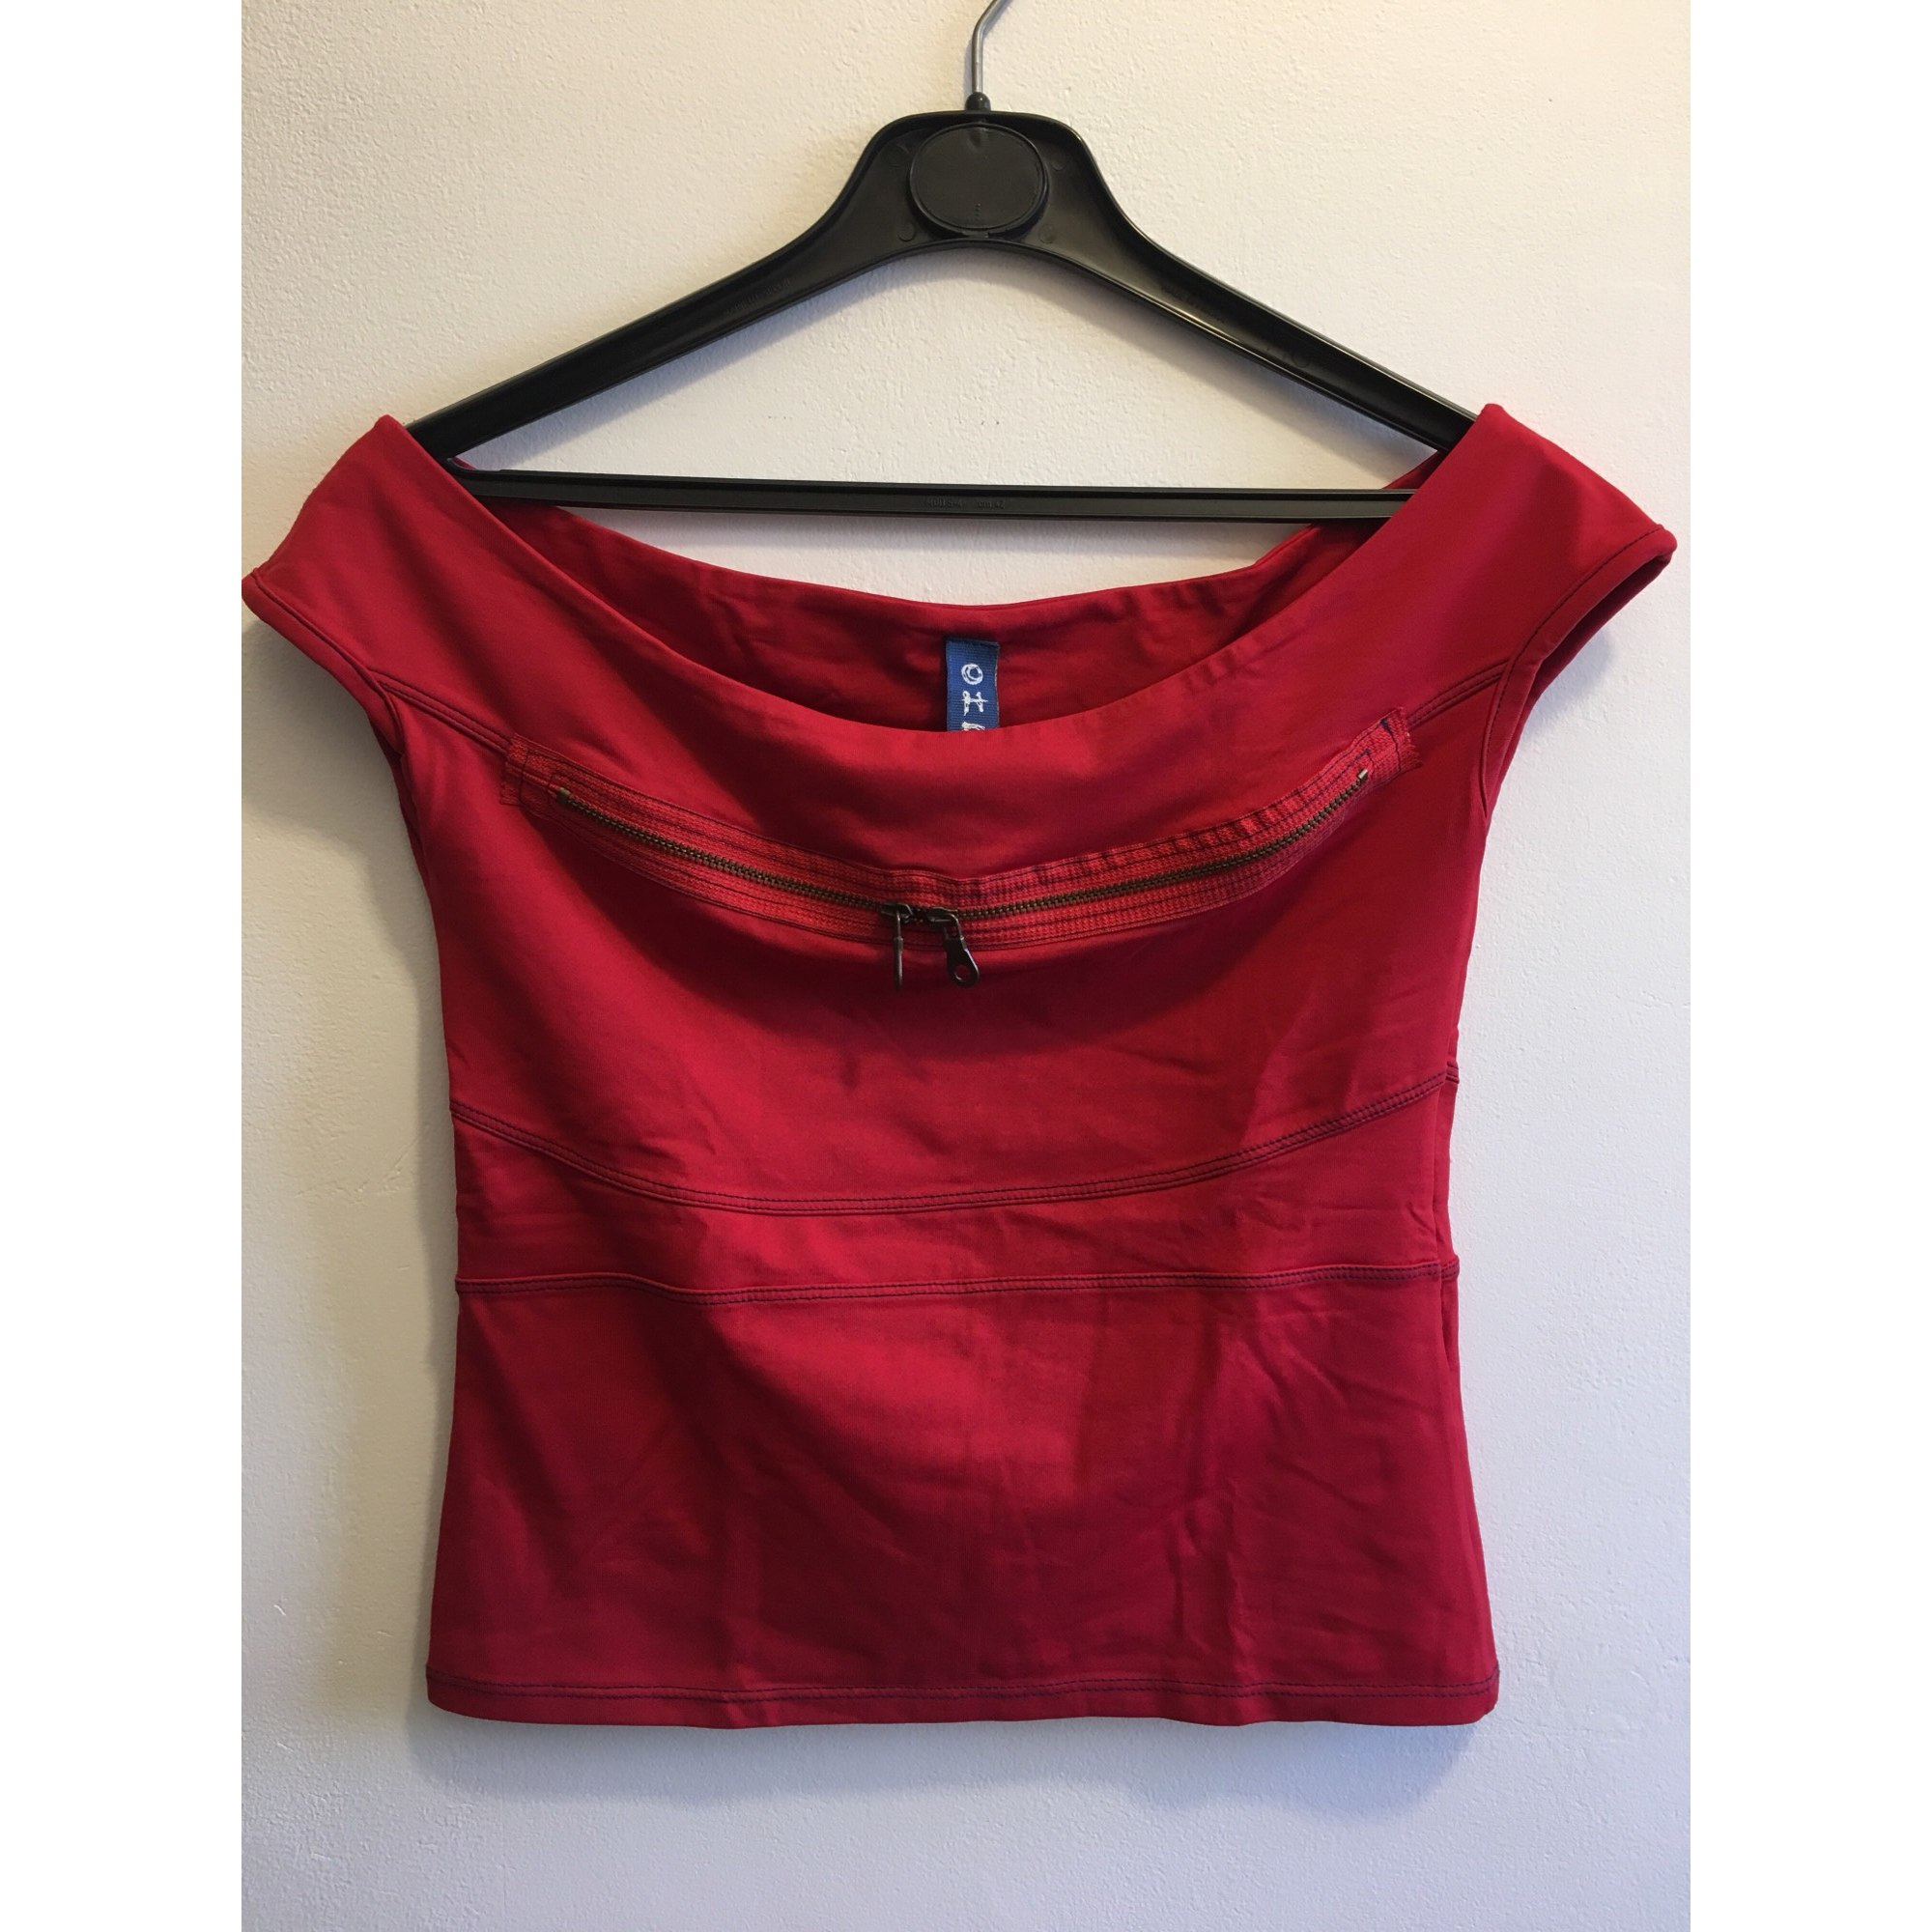 Top, tee-shirt OHDD Rouge, bordeaux